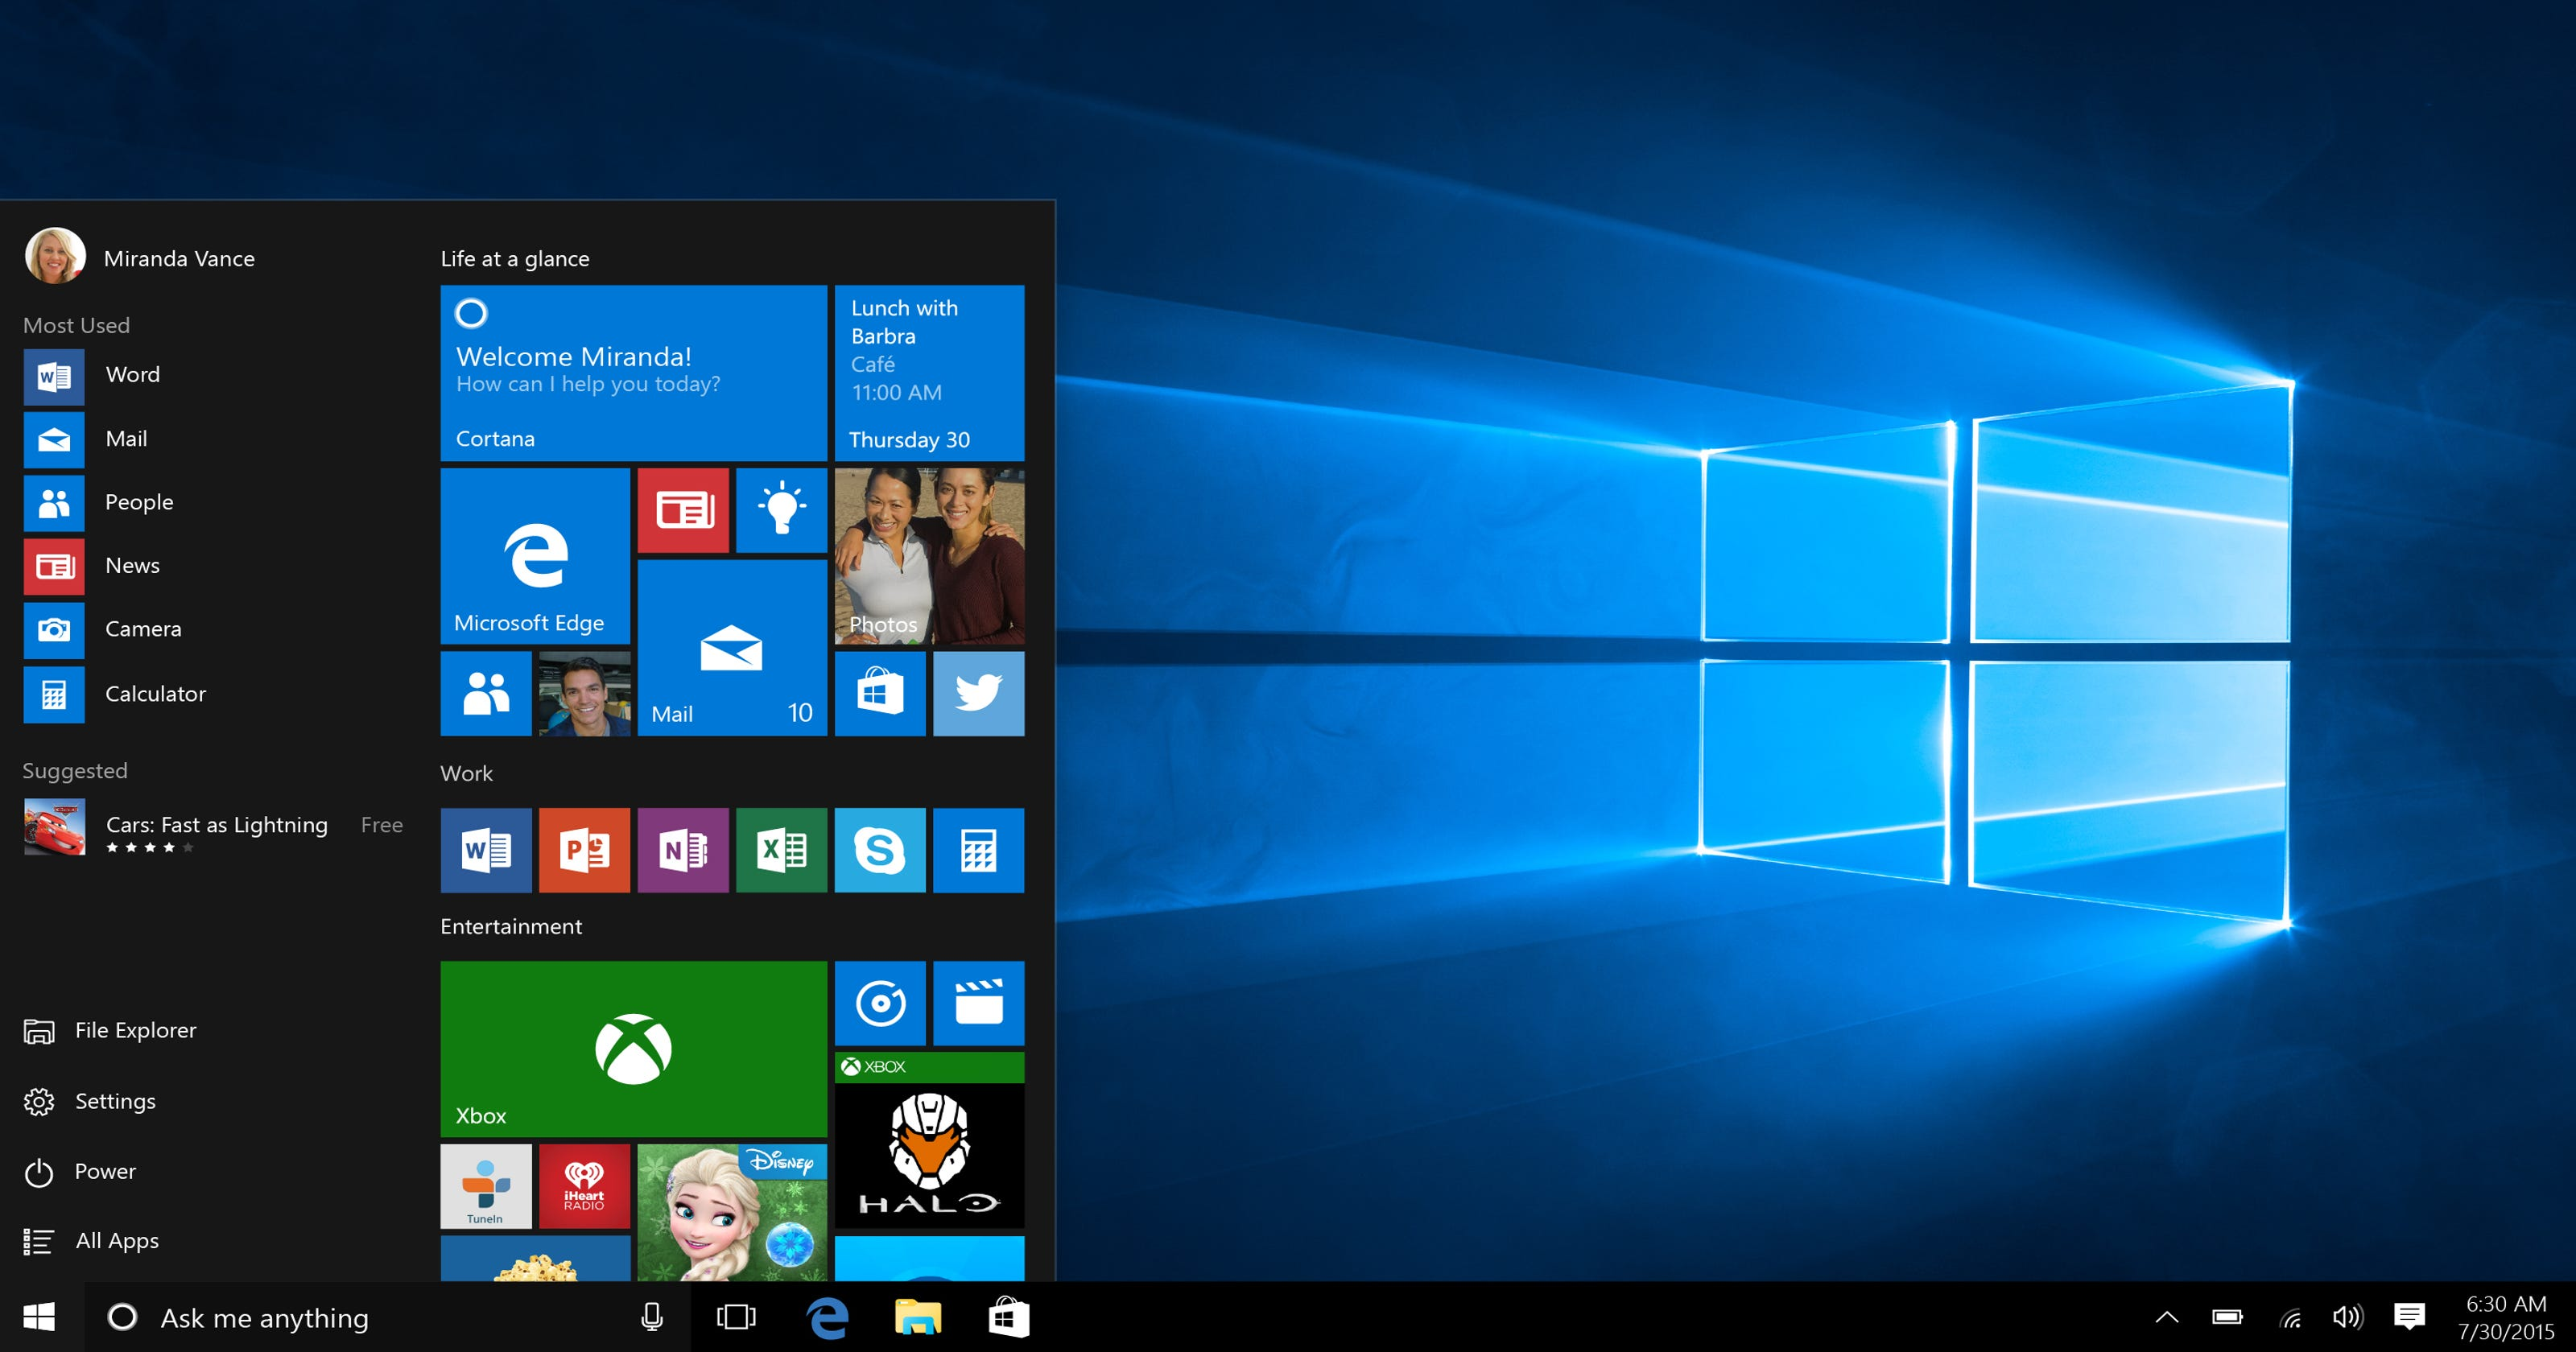 can you upgrade from windows 7 to windows 10 without losing files